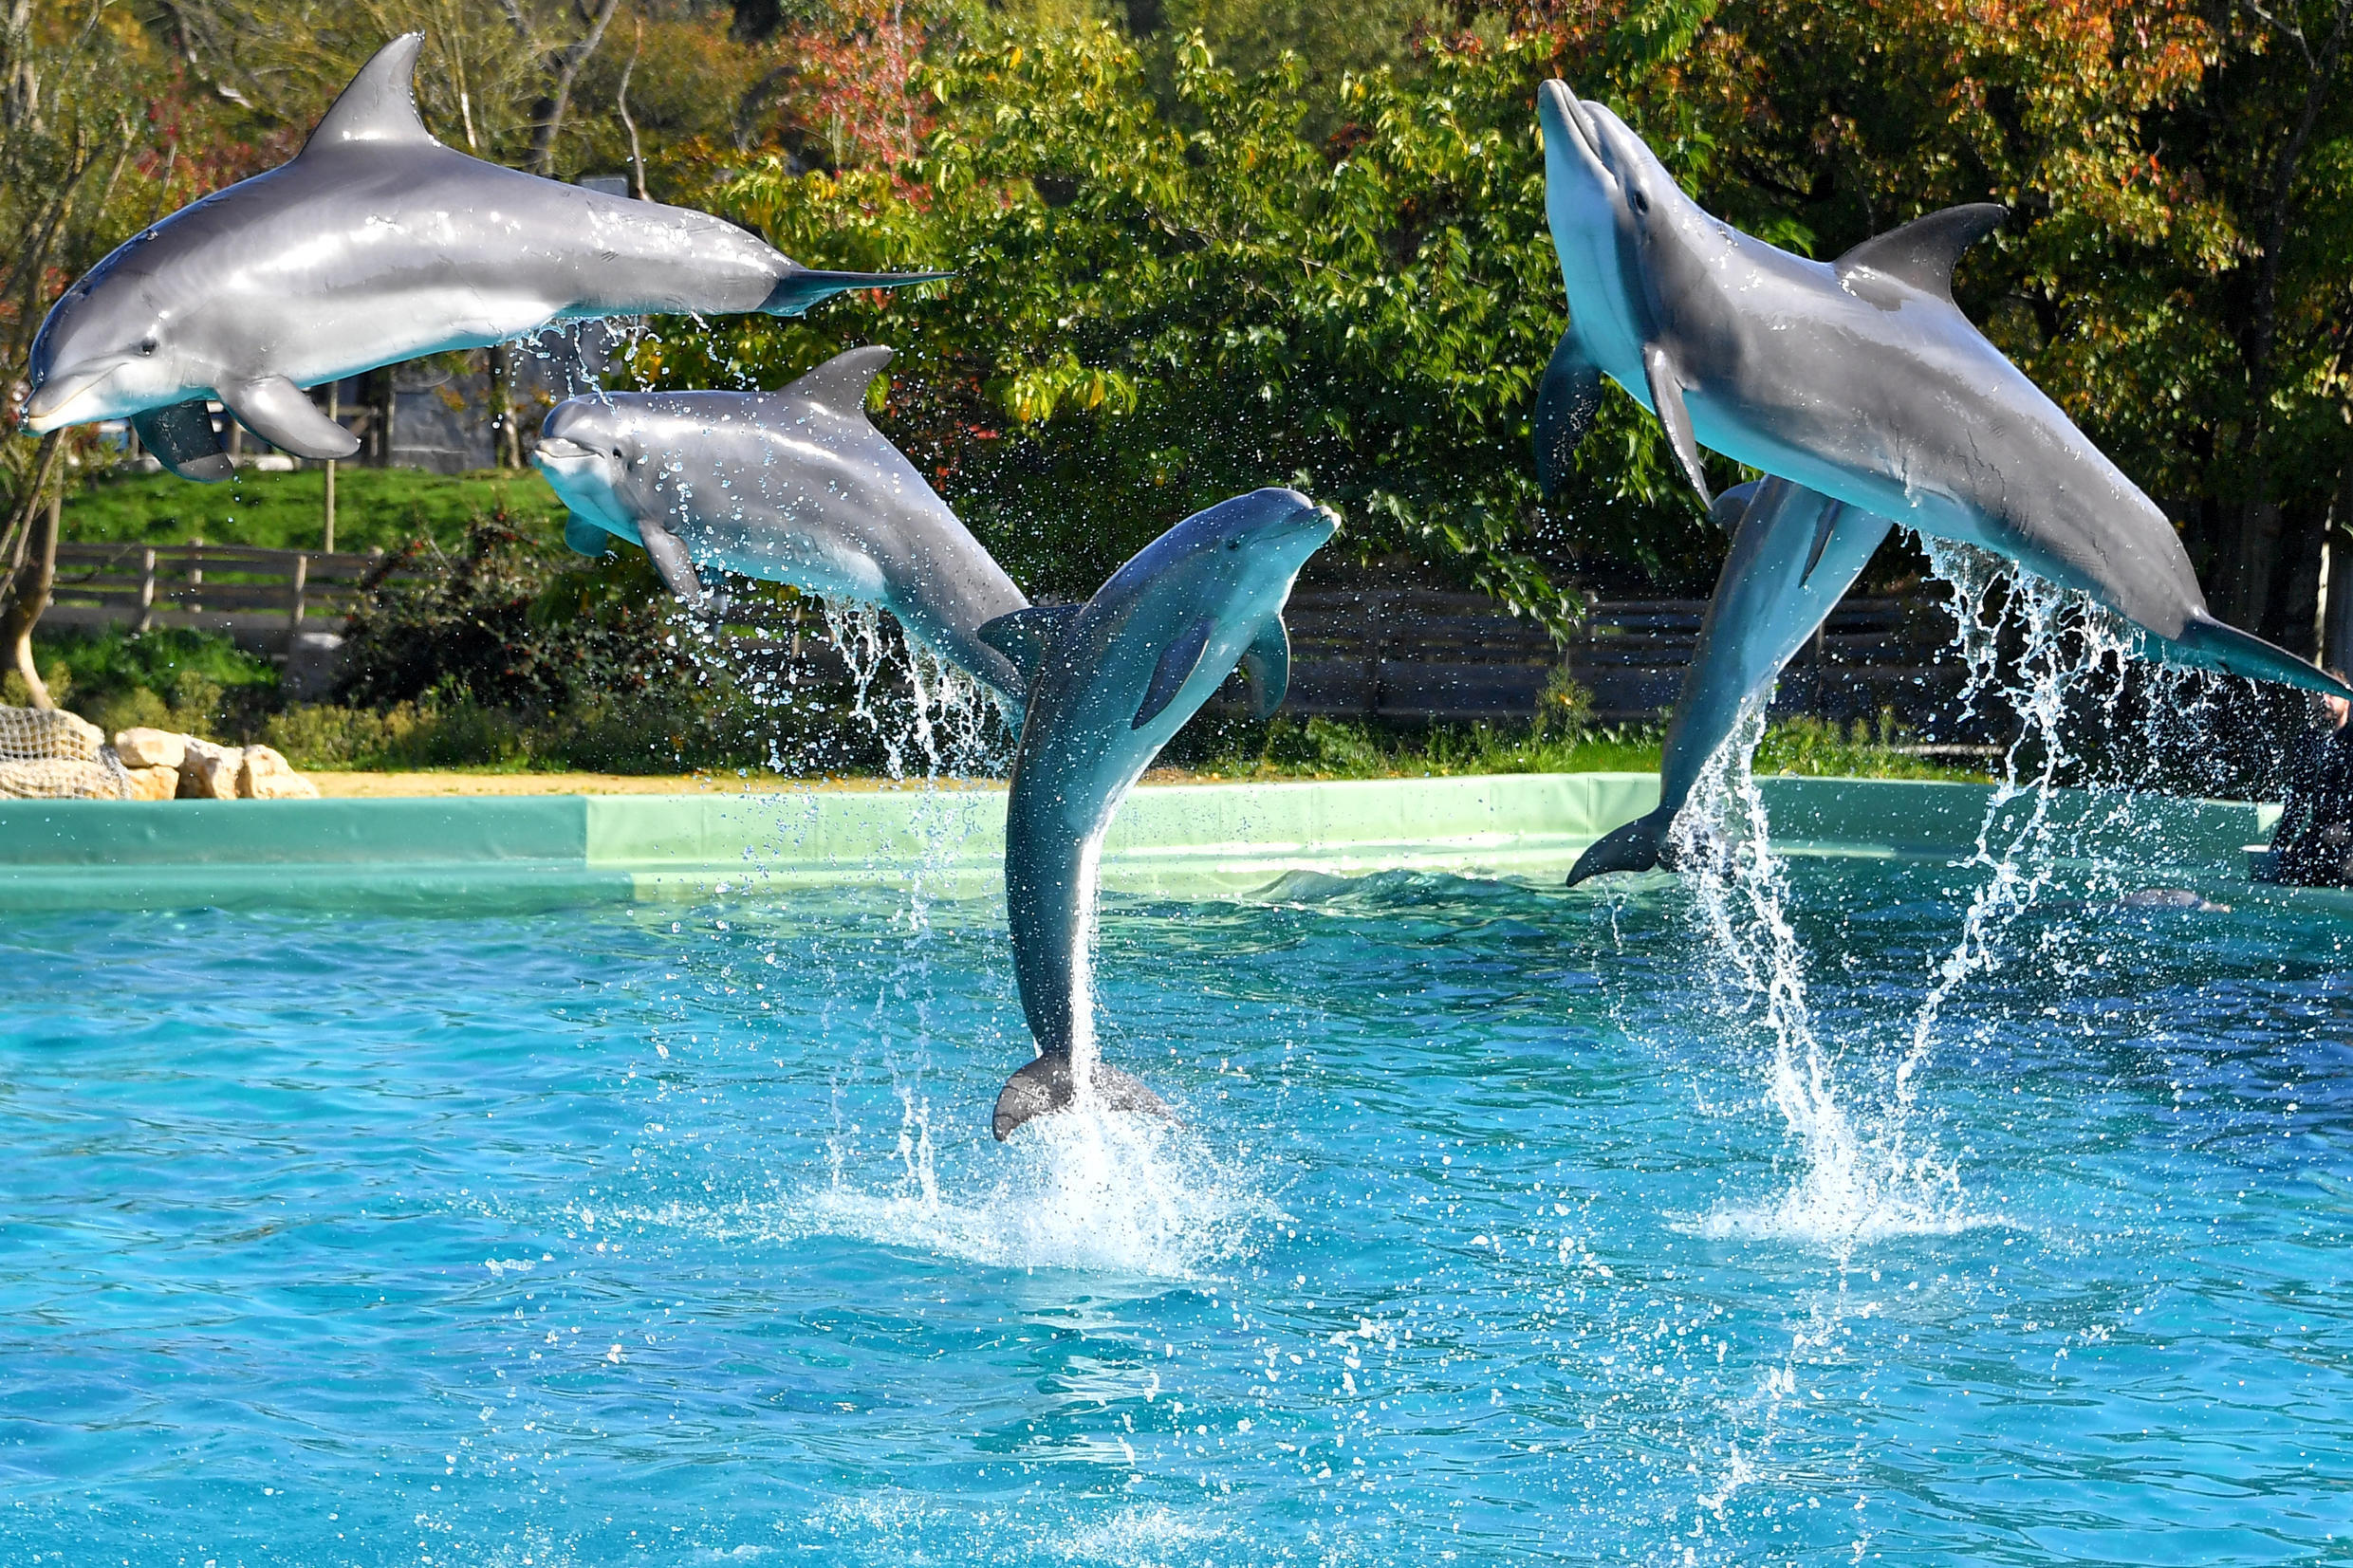 France's dolphinariums will also no longer be able to breed or bring in new dolphins or killer whales